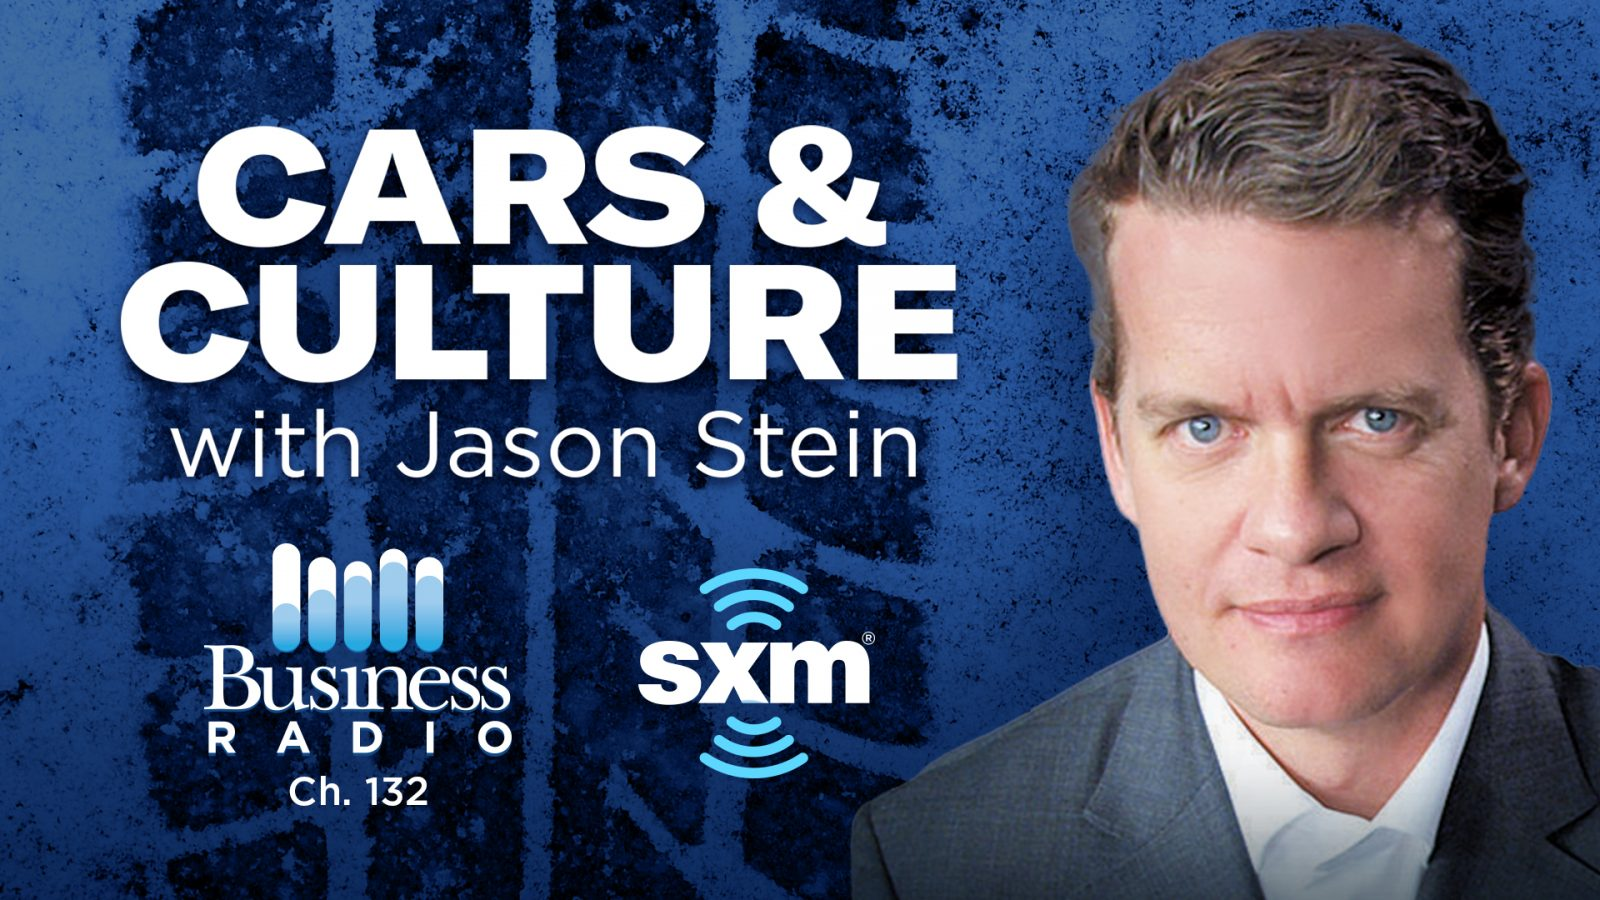 Buckle up for an all-new show about all things automobiles on Business Radio